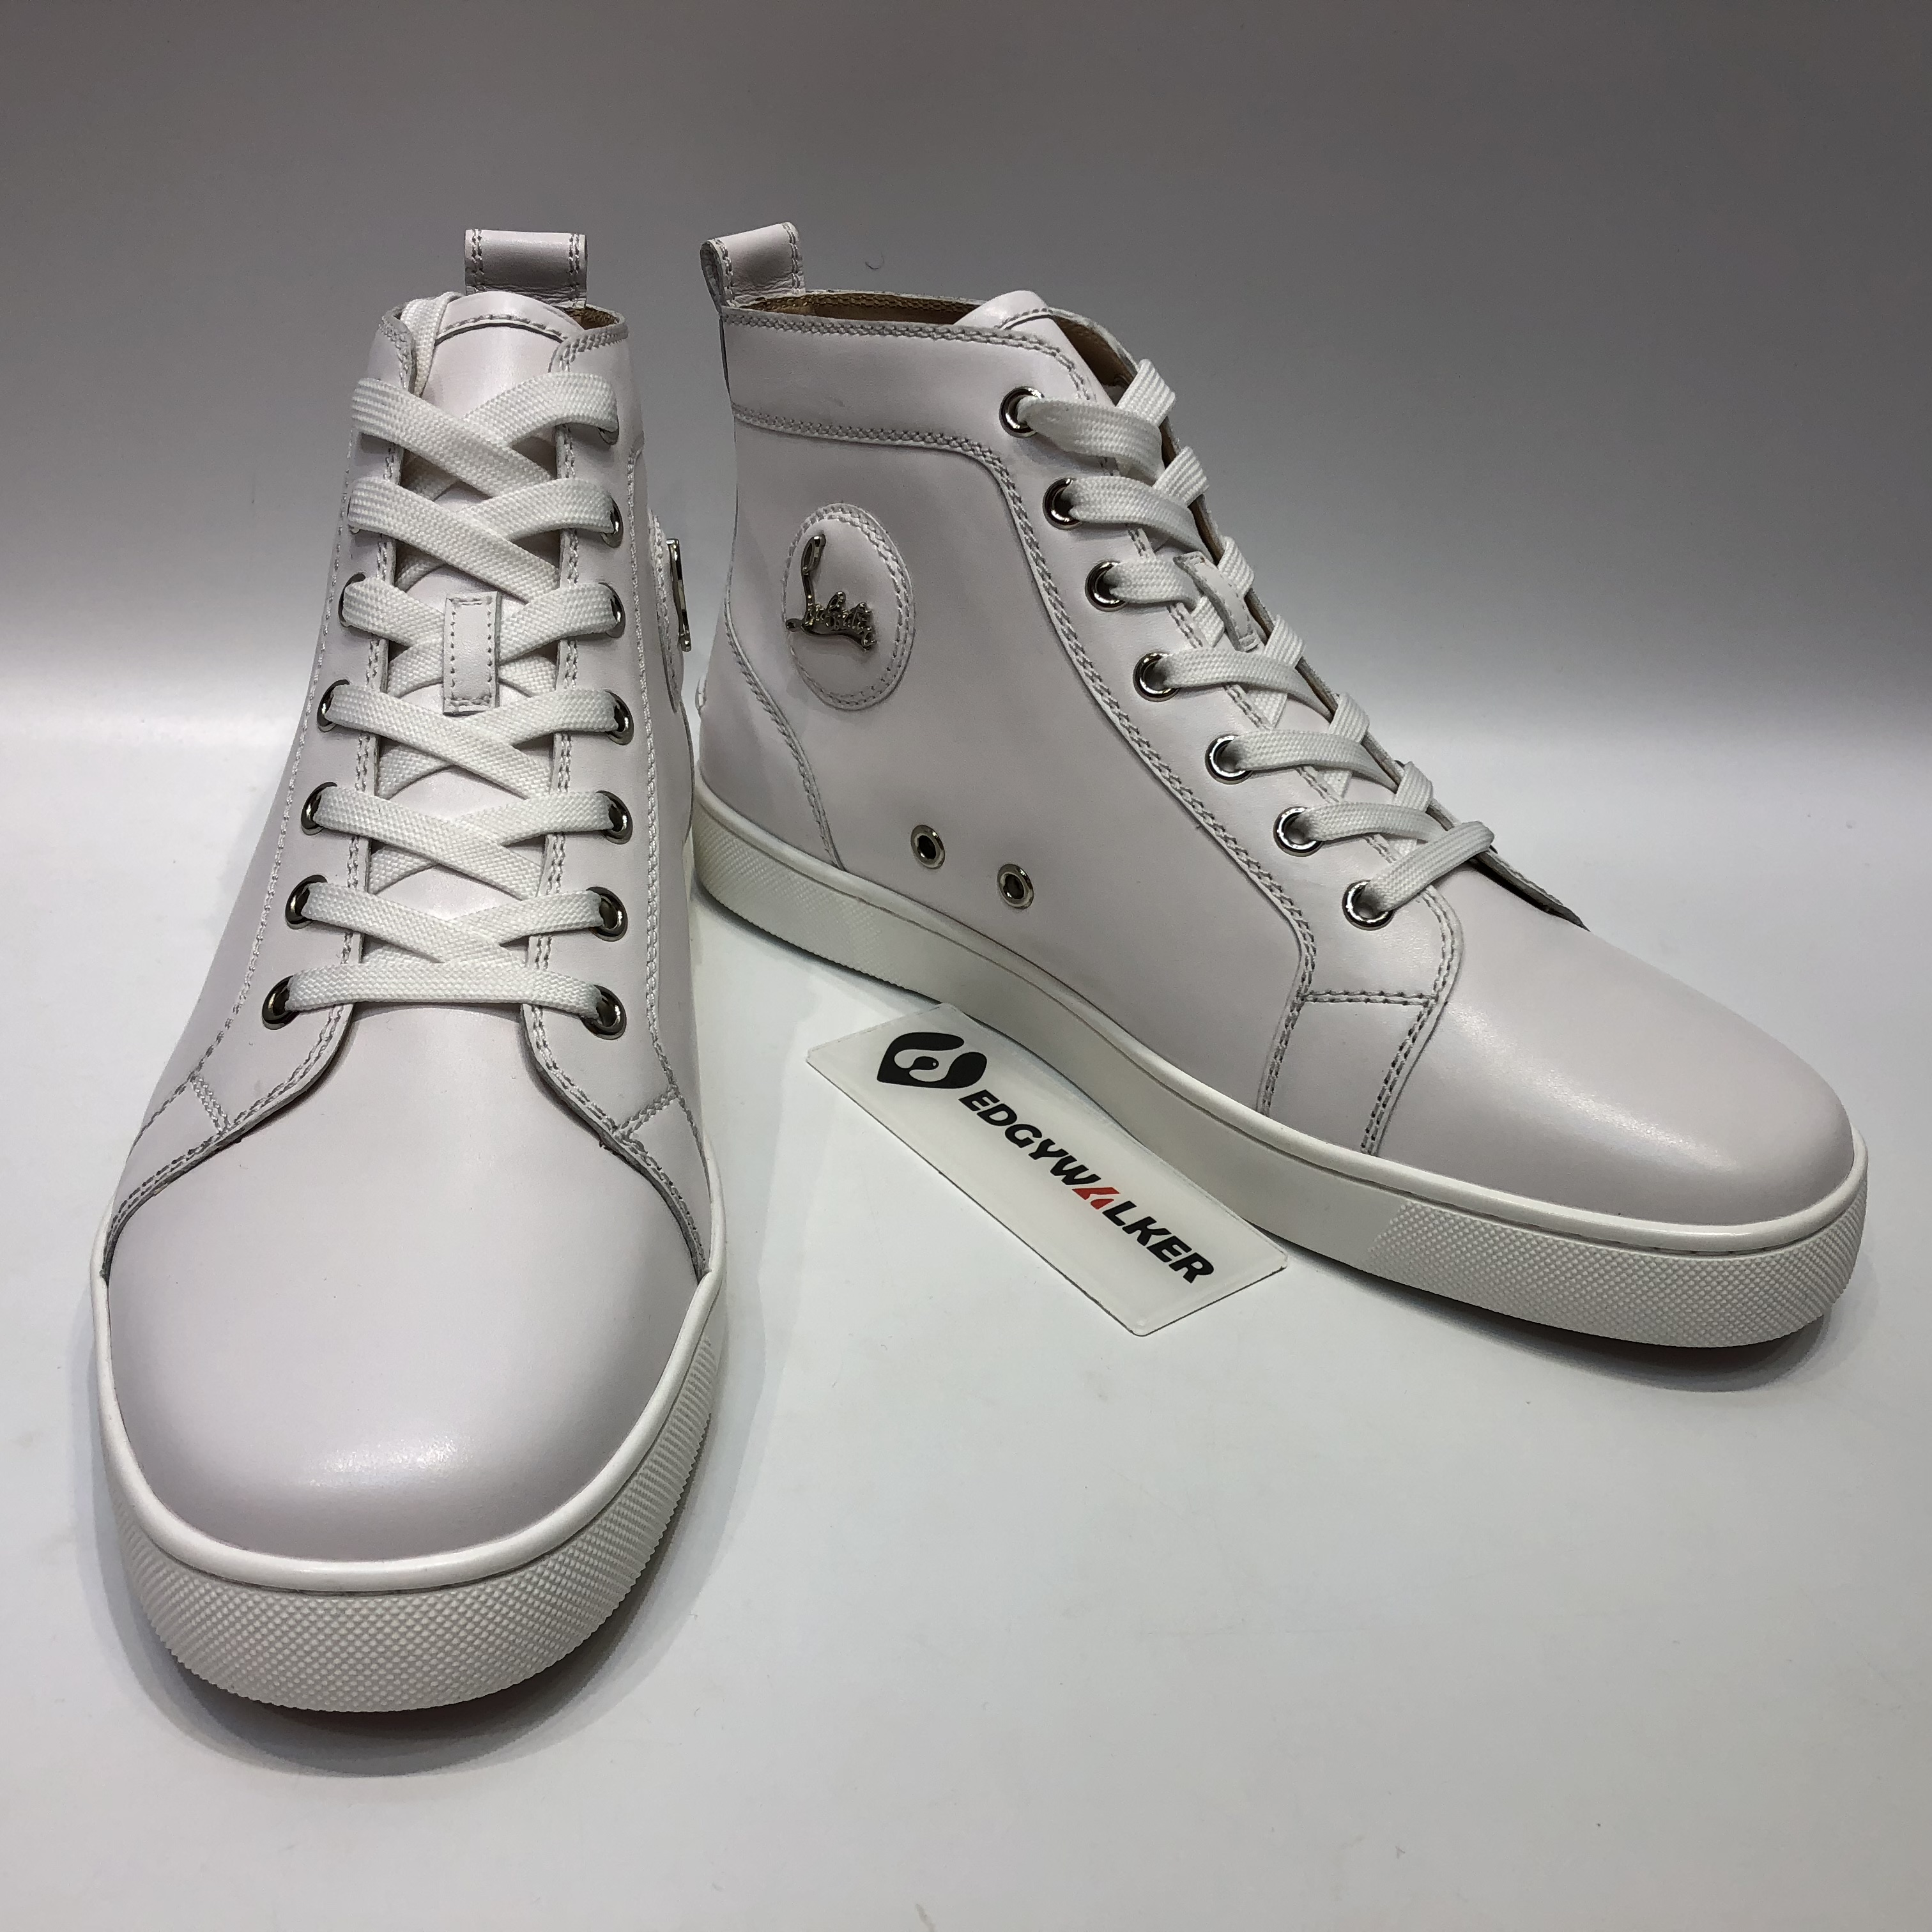 9b291a0cab5 CLSKH78 Louboutin Louis flat White Leather High-top Sneaker Item NO  CLSKH78